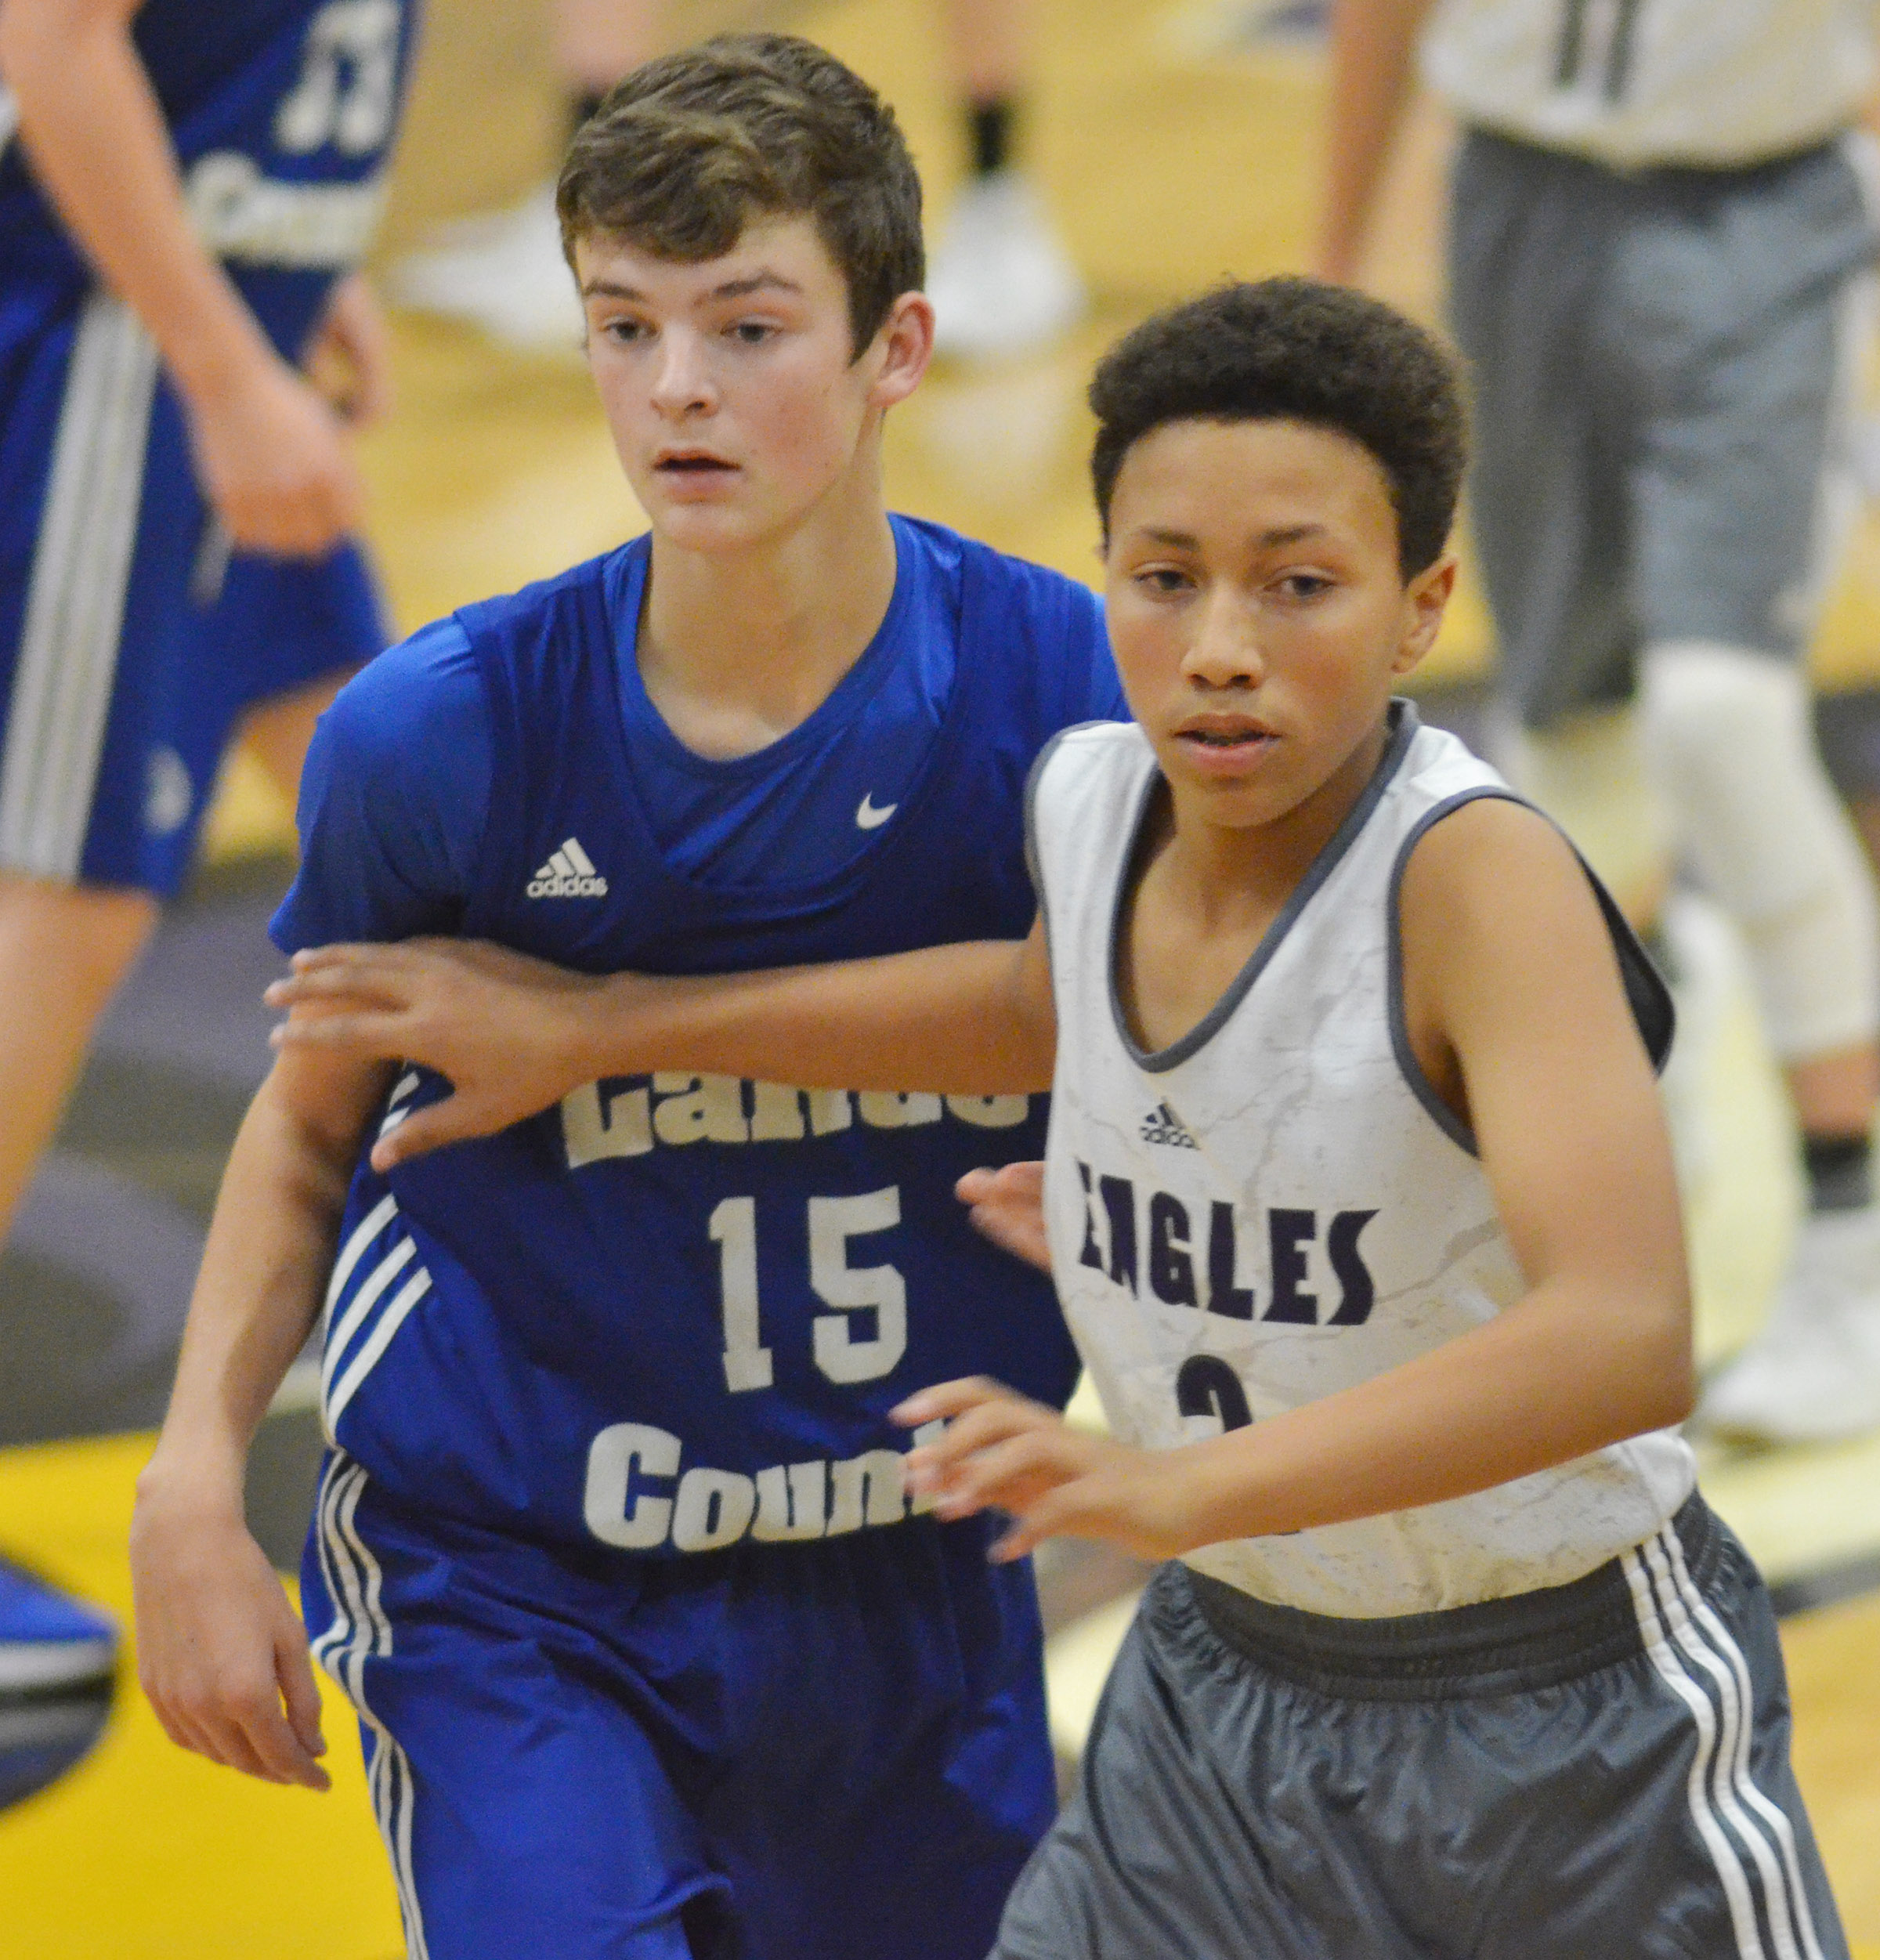 CHS freshman Jastyn Shively plays defense.